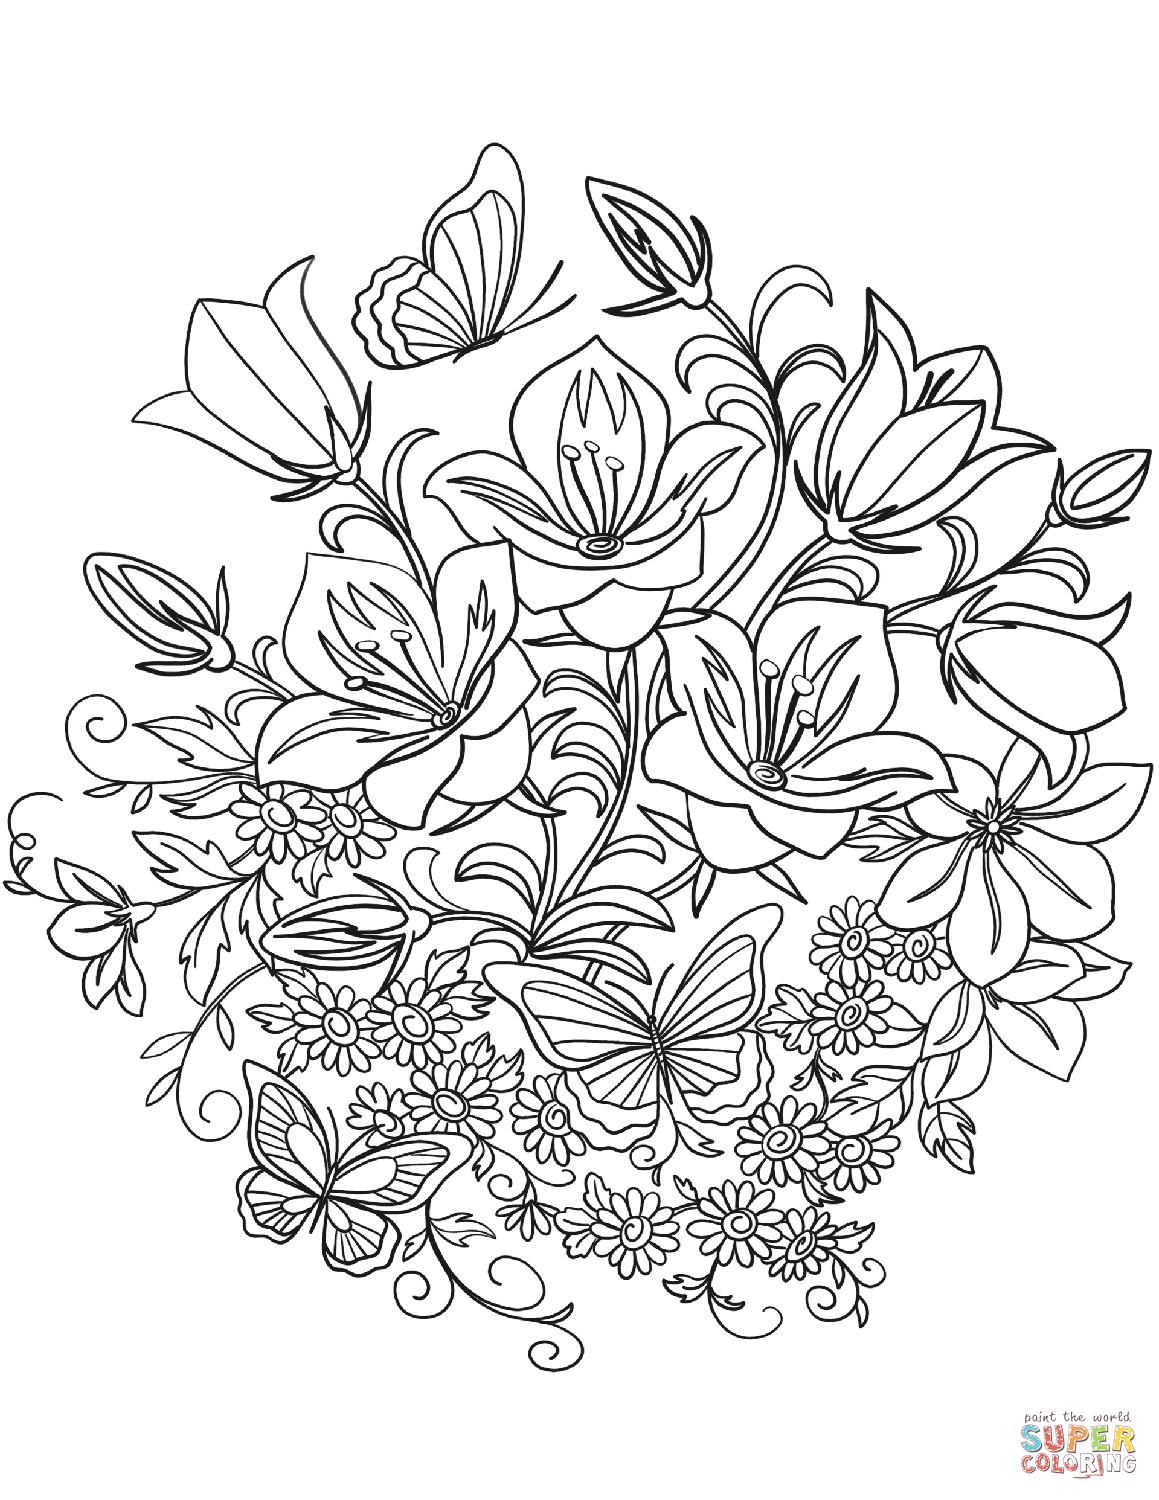 Butterfly And Flowers Coloring Page